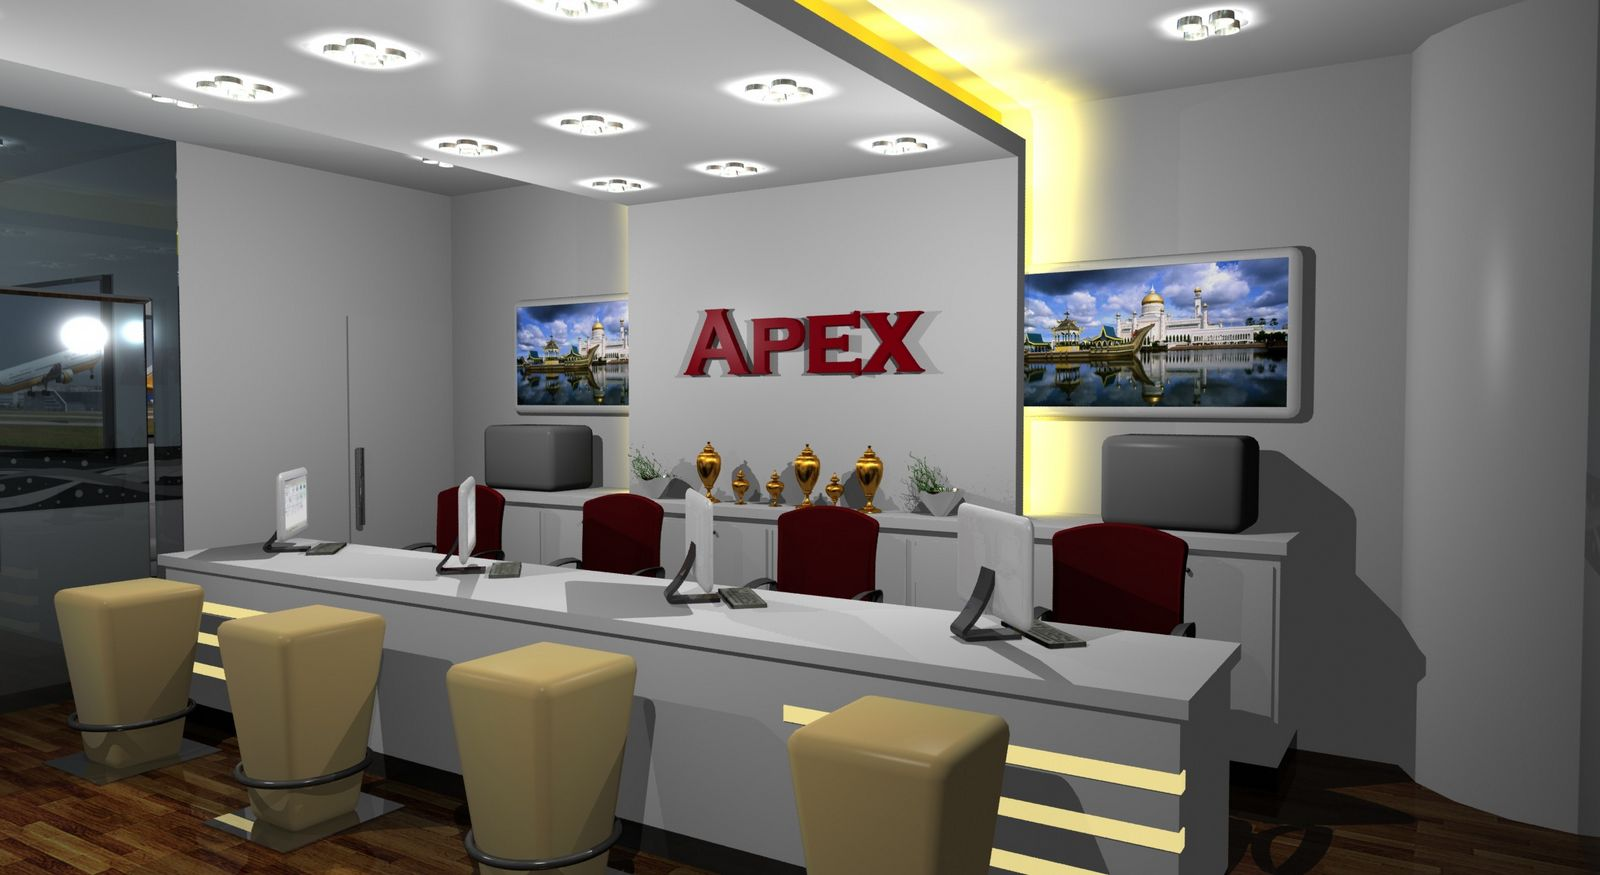 Travel agency office design ideas for Interior design travel agency office